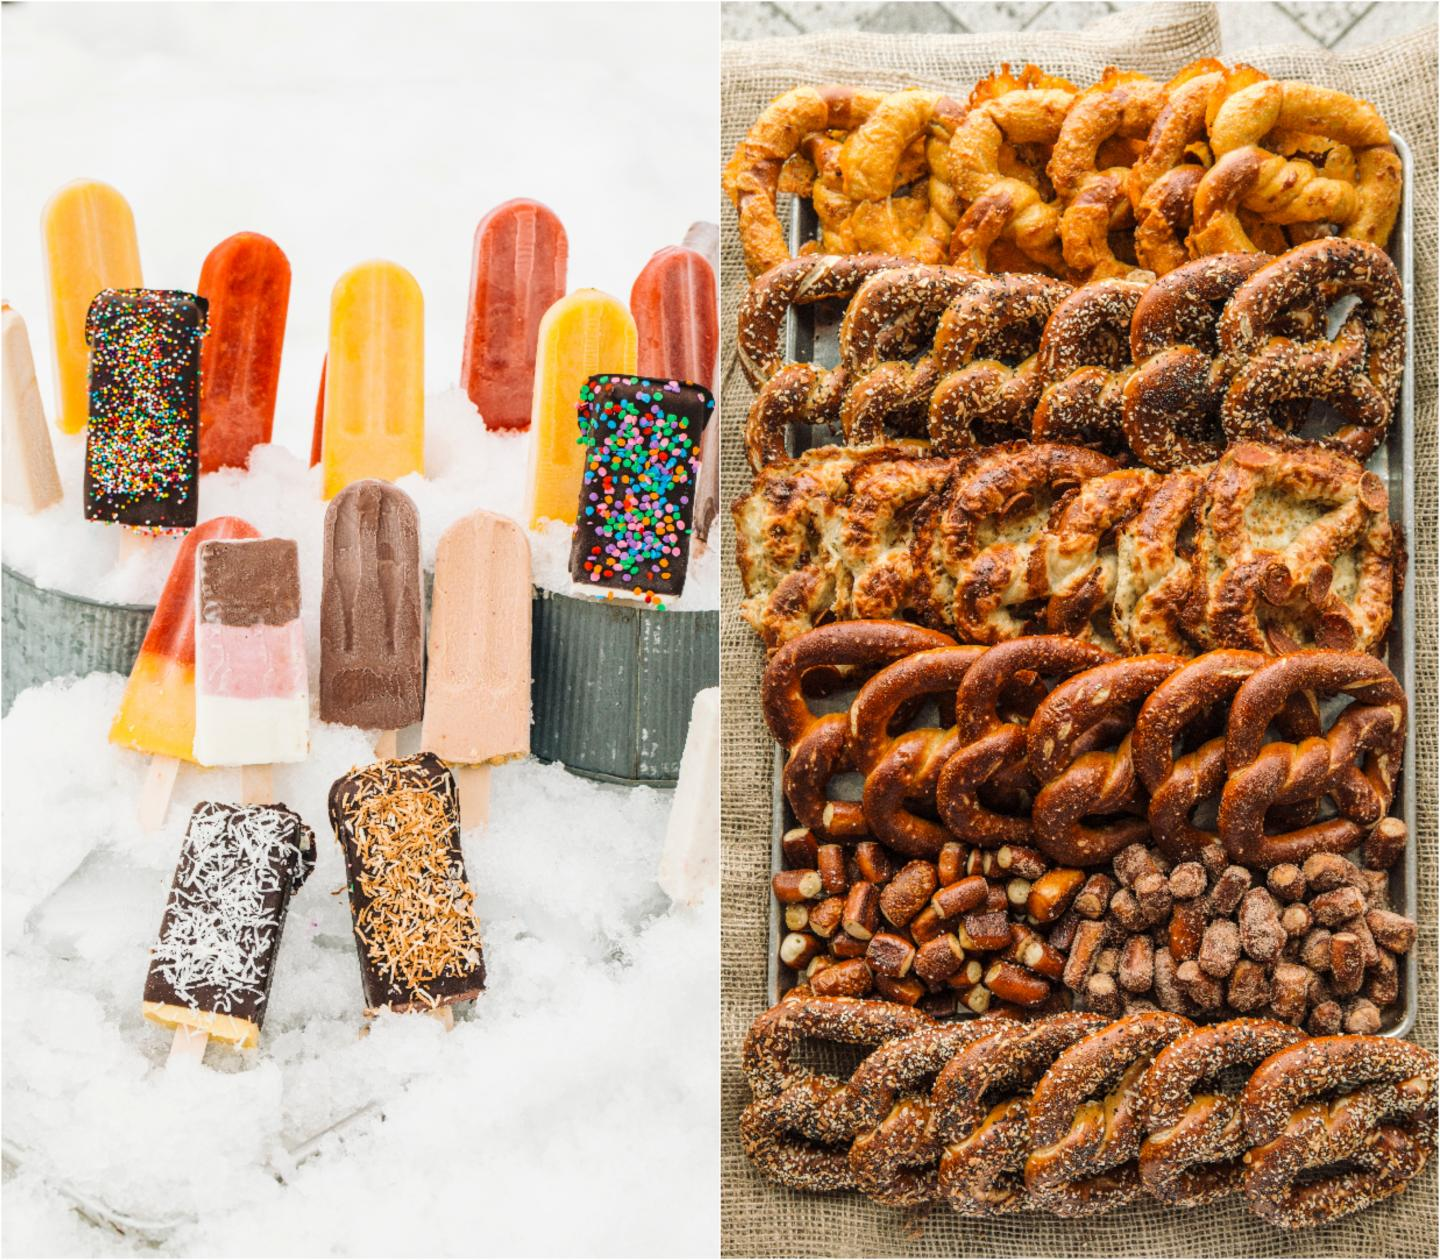 popsicles and pretzels in ozzie's